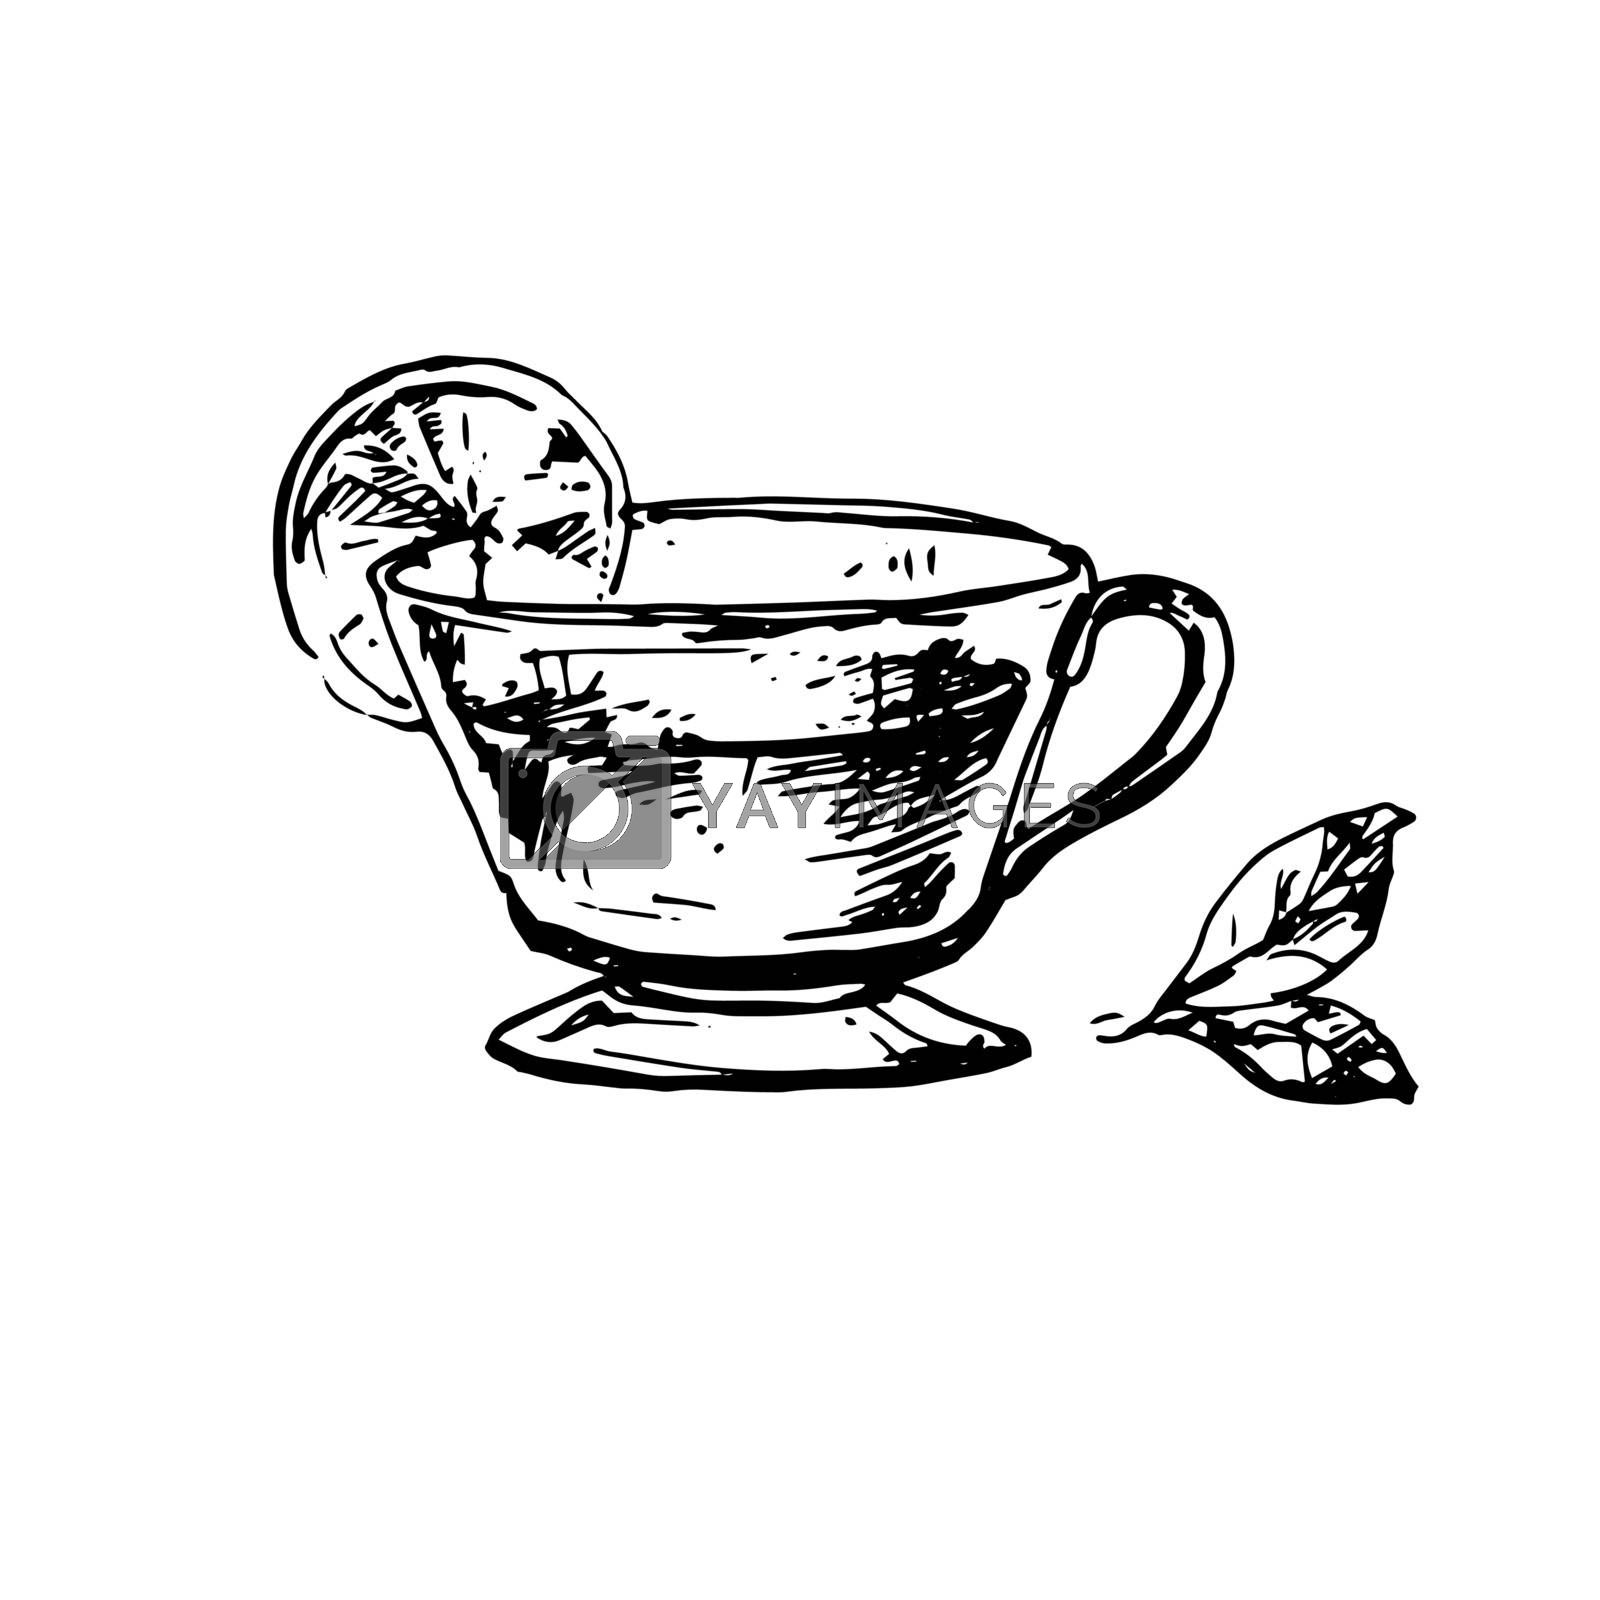 Cup of Tea with Mint and Lime. Hand Drawn Sketch of Tea. Doodle Outline. Vintage Hot Drink